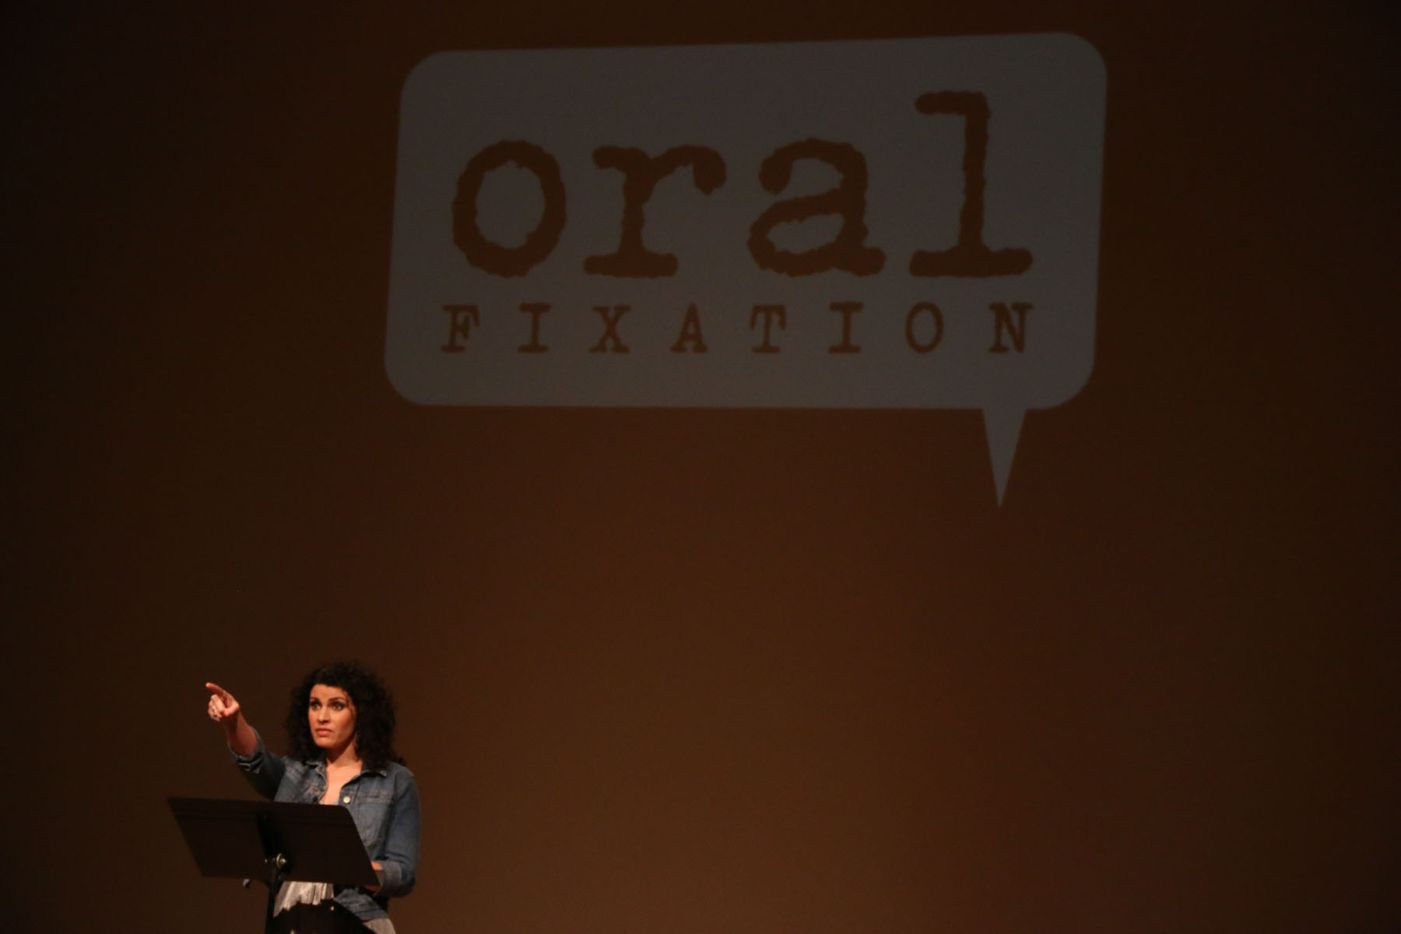 """Monica Berry performed her story """"Go with the Flow""""€ at Oral Fixation's """"The Best of Season Four"""" at the Dallas Museum of Art on August 15, 2015"""